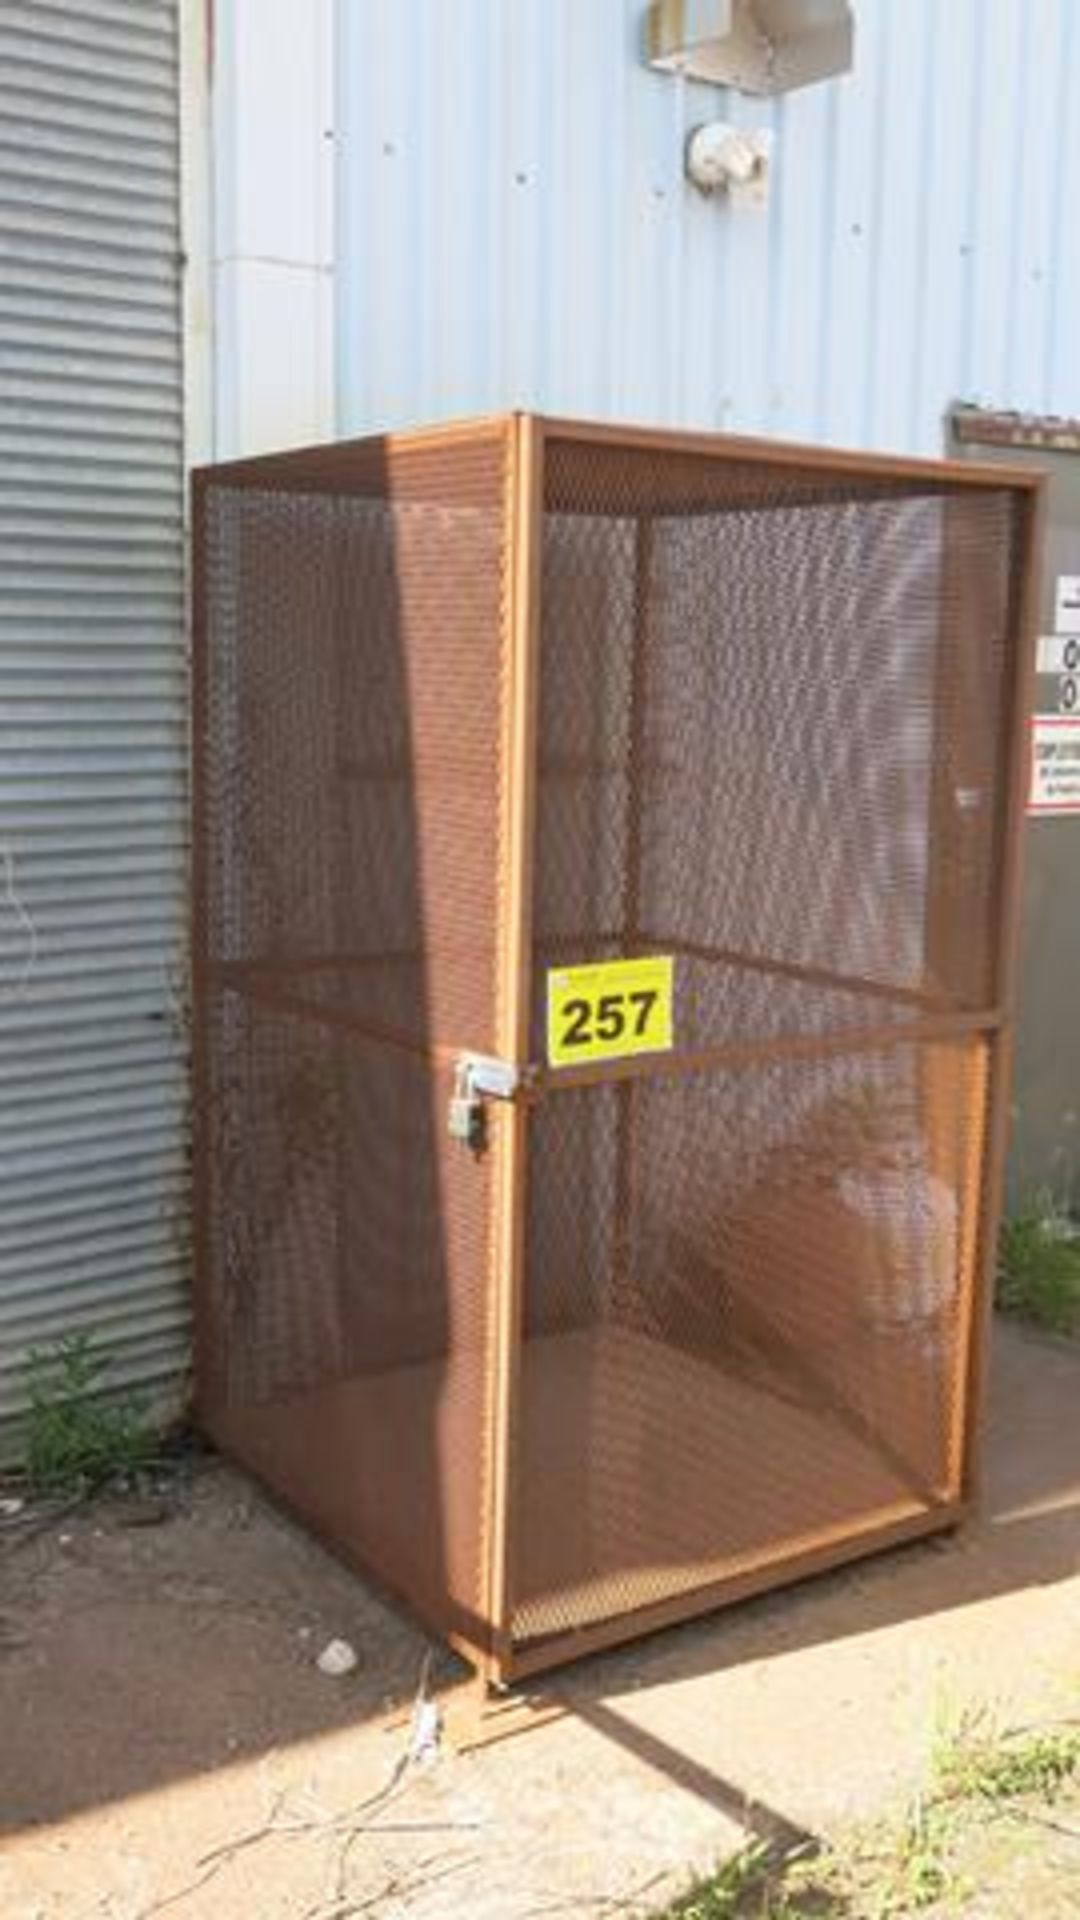 OUTDOOR STORAGE CAGE, 6' X 4' X 4' (CONTENTS NOT INCLUDED)